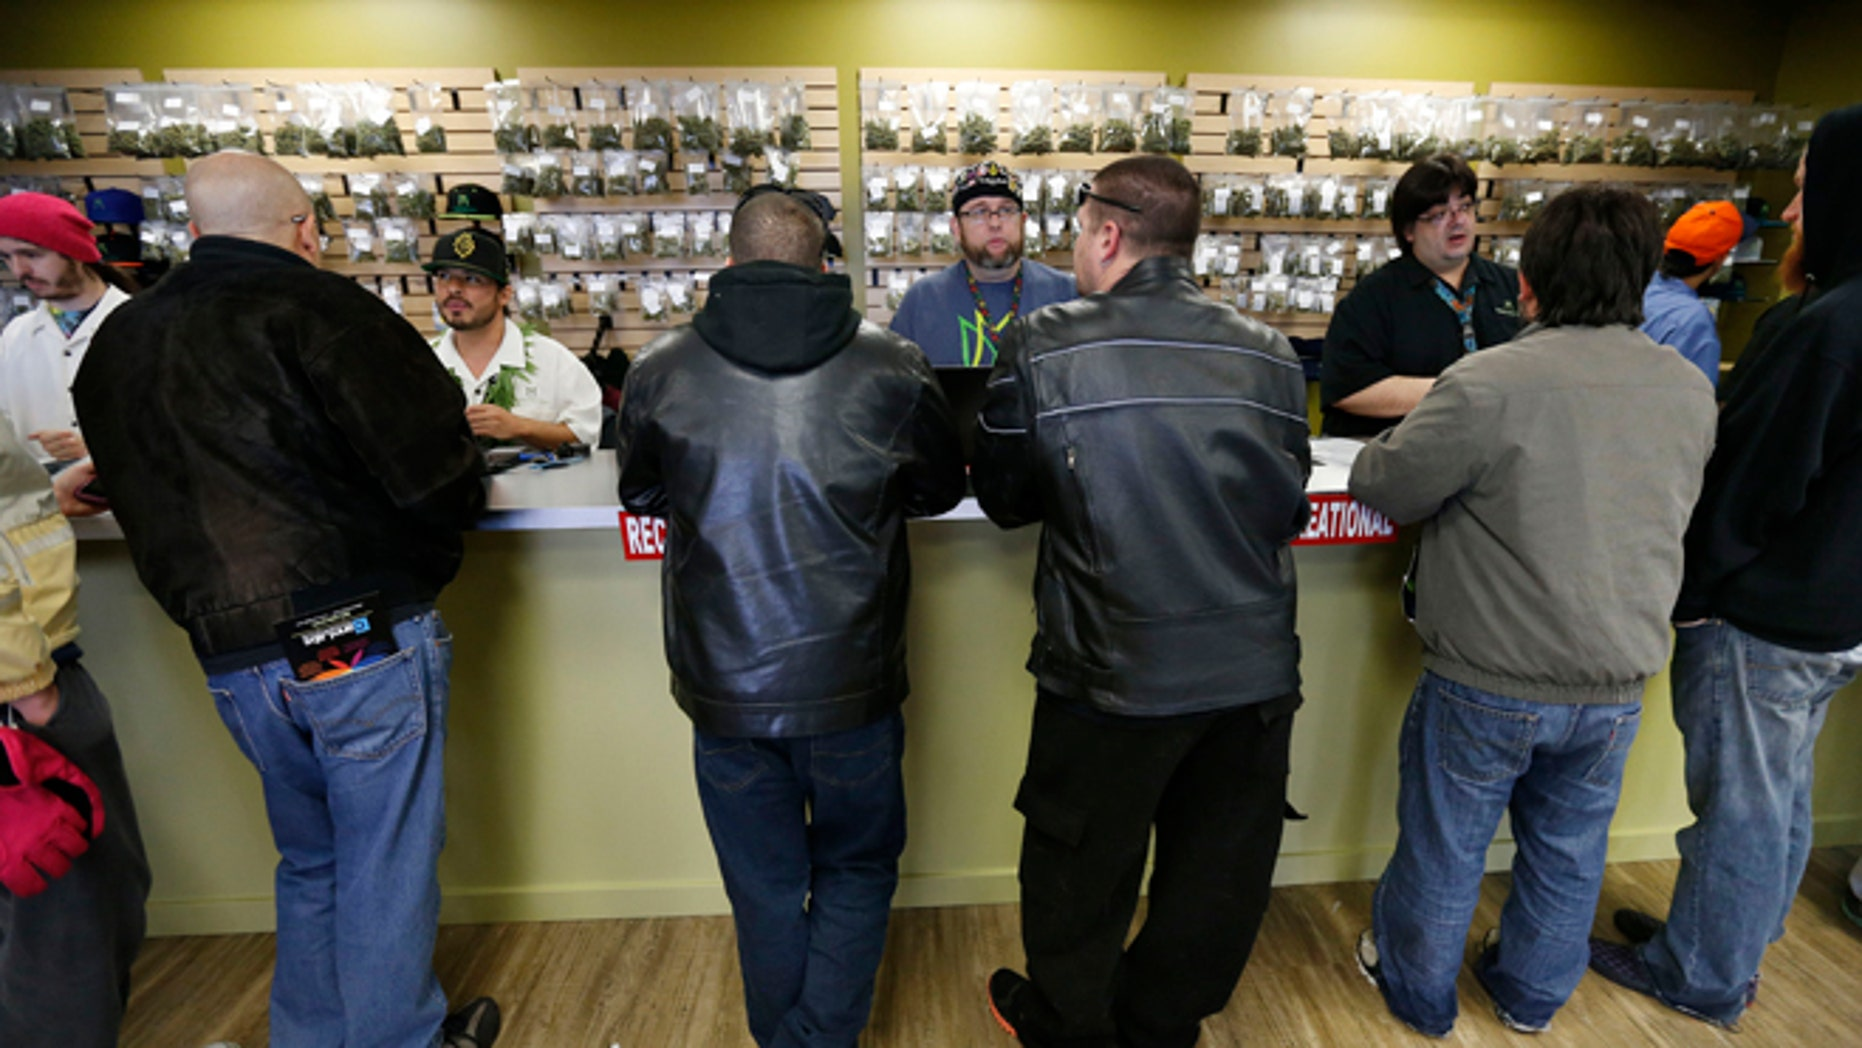 """Employees help customers at the crowded sales counter inside Medicine Man marijuana retail store, which opened as a legal recreational retail outlet in Denver on Wednesday Jan. 1, 2014. Colorado began retail marijuana sales on Jan. 1, a day some are calling """"Green Wednesday."""" (AP Photo/Brennan Linsley)"""